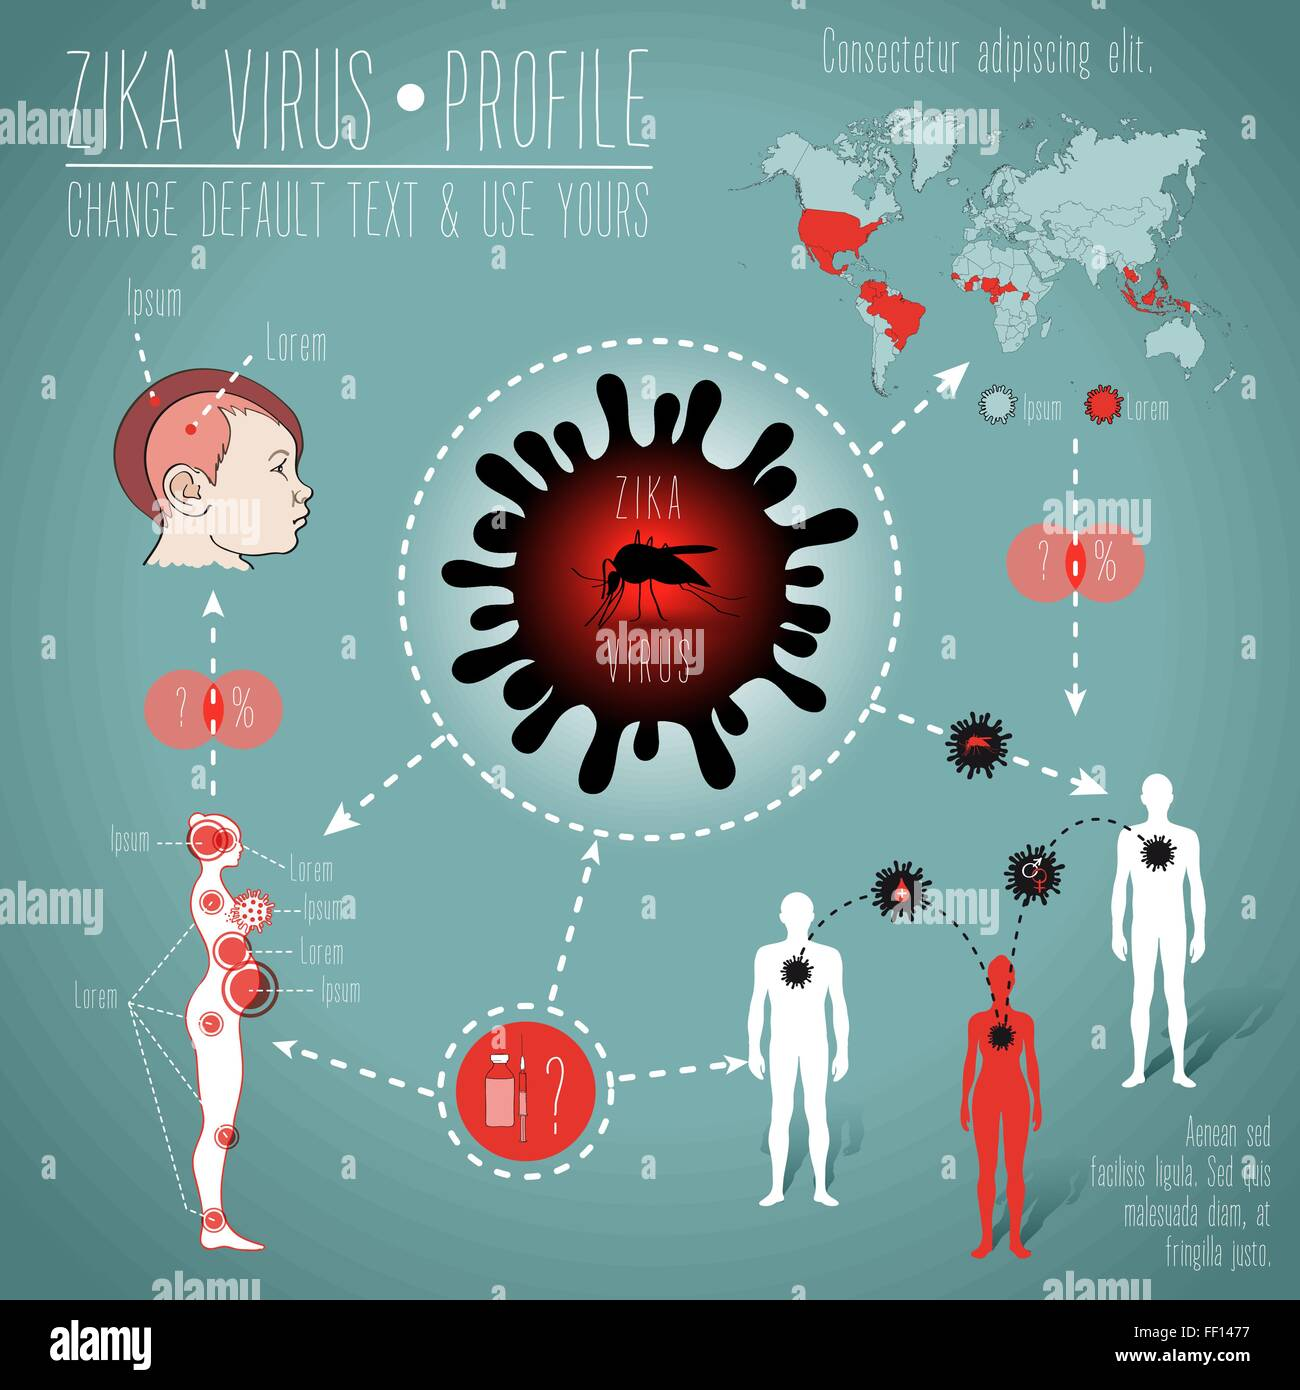 illustration of zika virus epidemy worldwide situation, with map, human bodies, virus and mosquito drawings and - Stock Vector